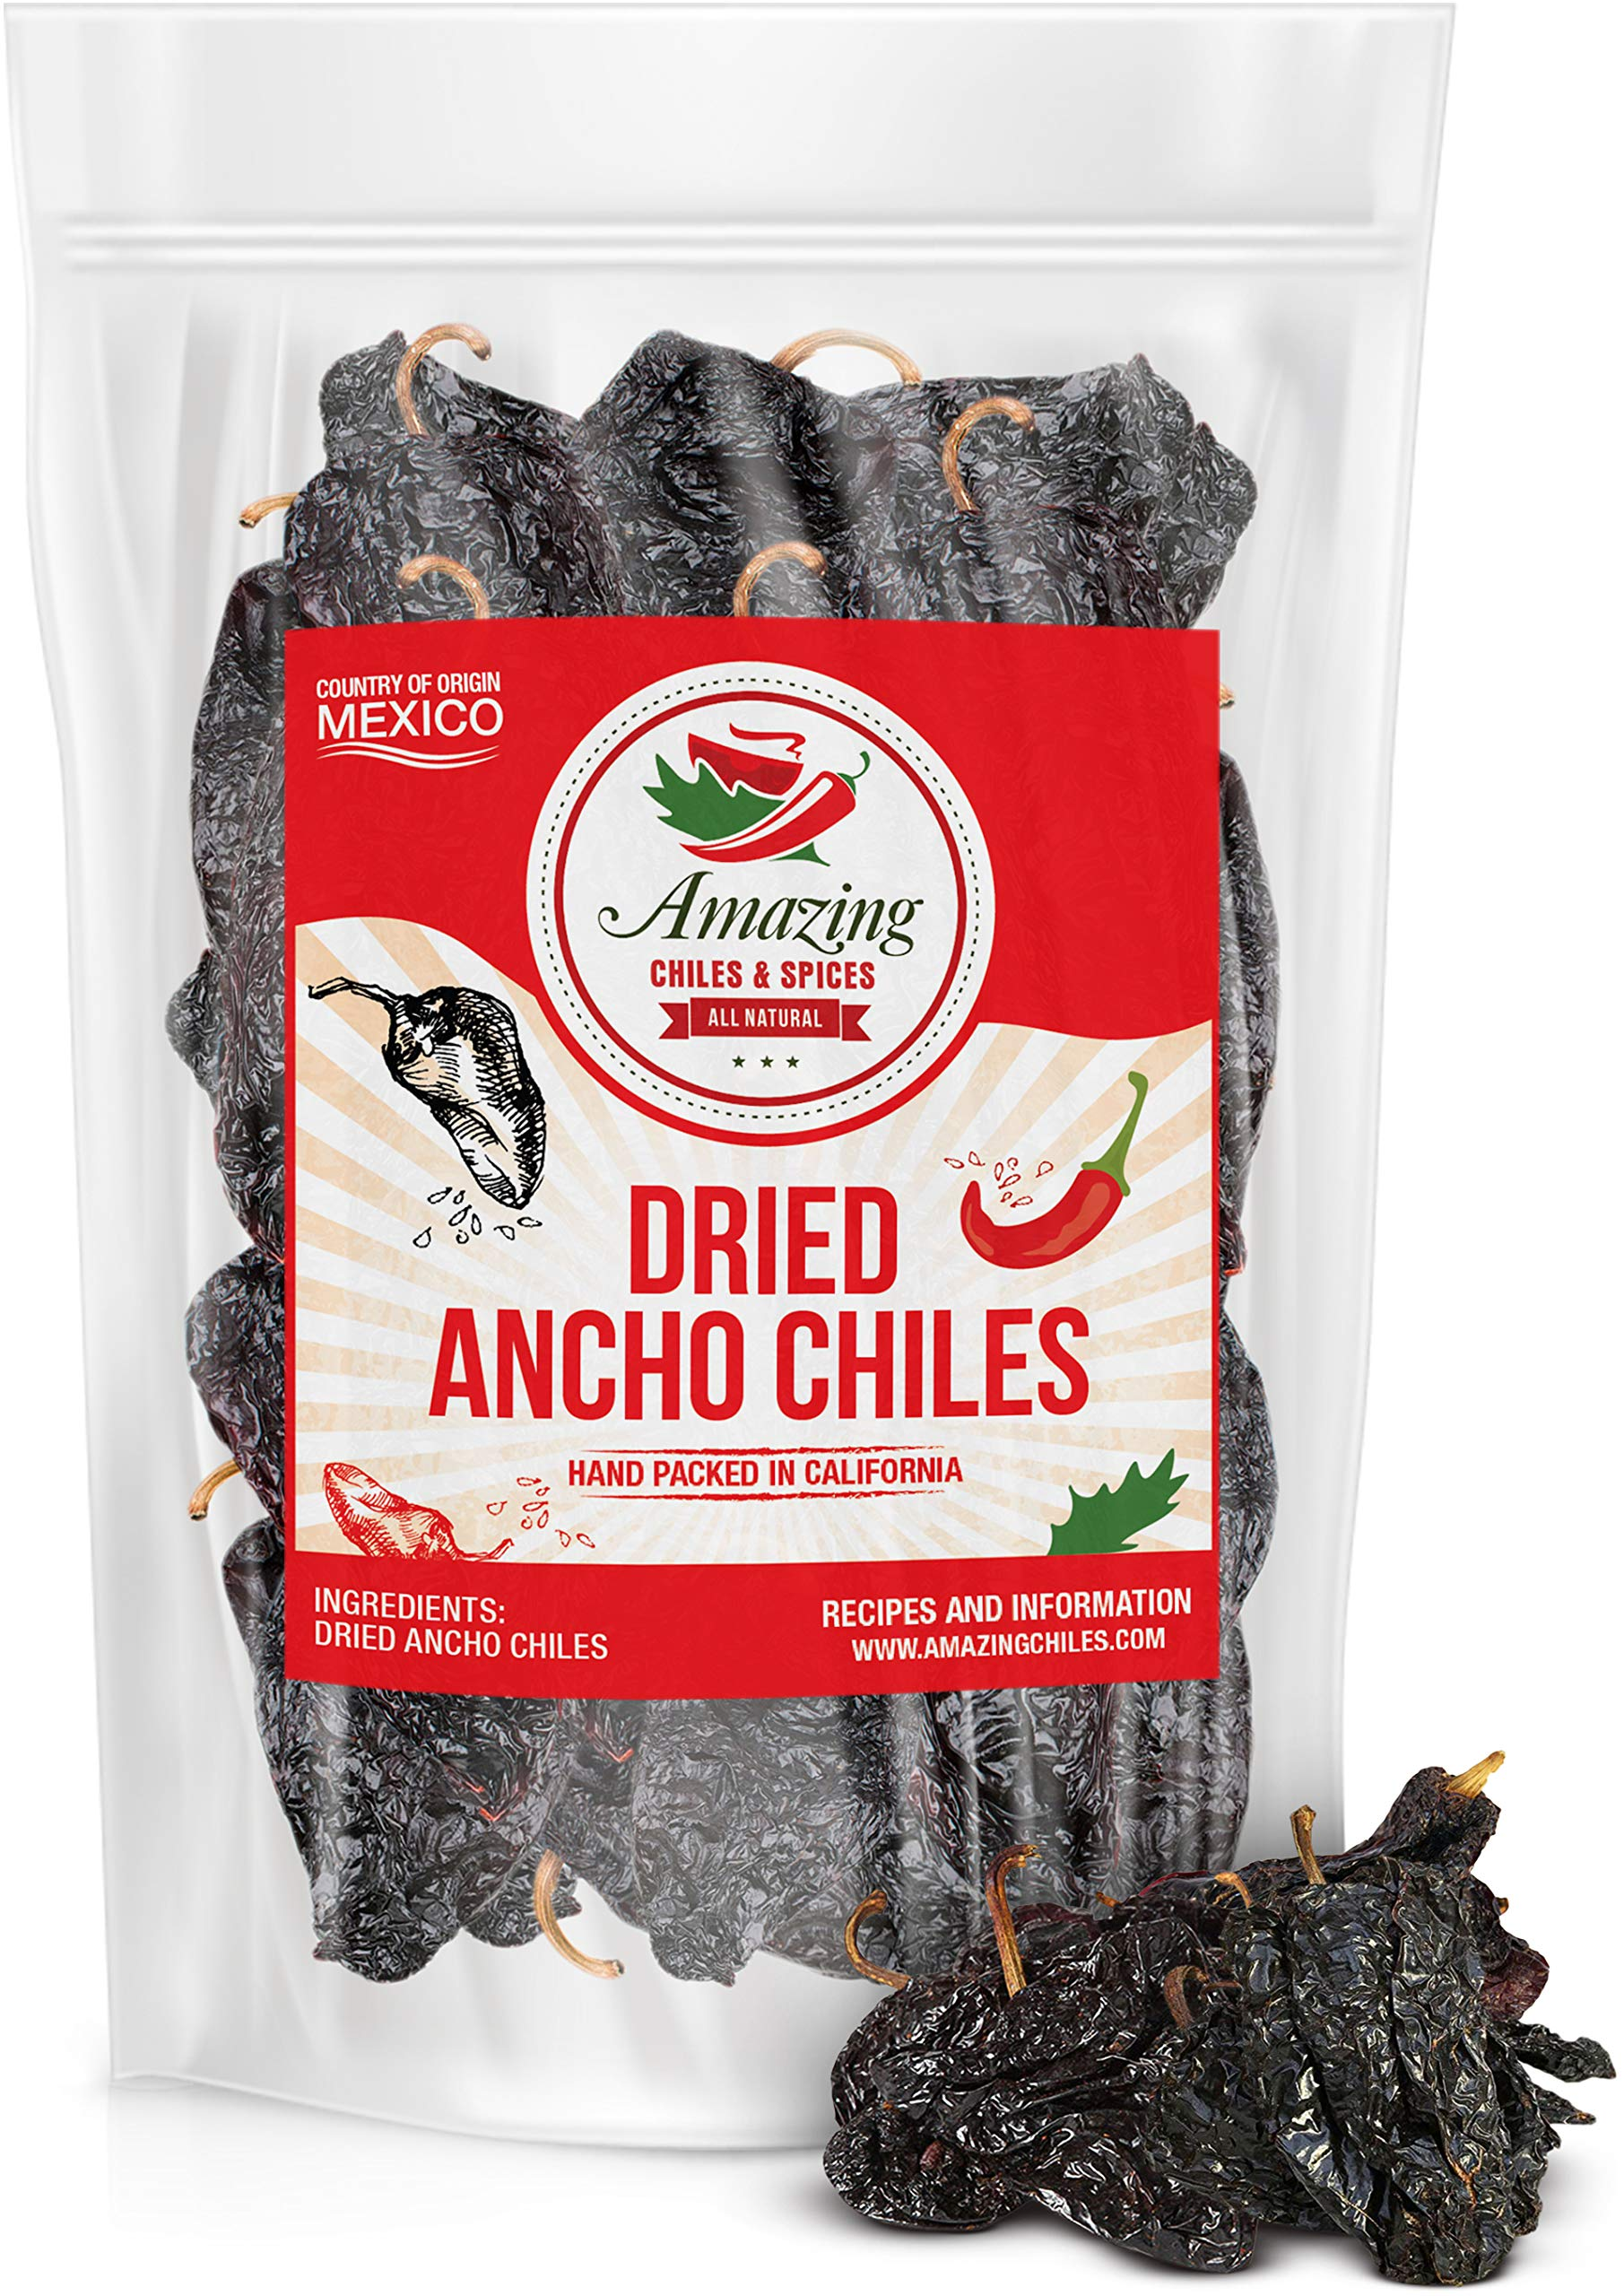 Dried Ancho Chiles Peppers 5 oz – Natural and Premium. Great For Recipes Like Mexican Mole, Sauces, Stews, Salsa, Meats, Enchiladas. Mild to Medium Heat, Sweet & Smoky Flavor. Air Tight Resealable Bag